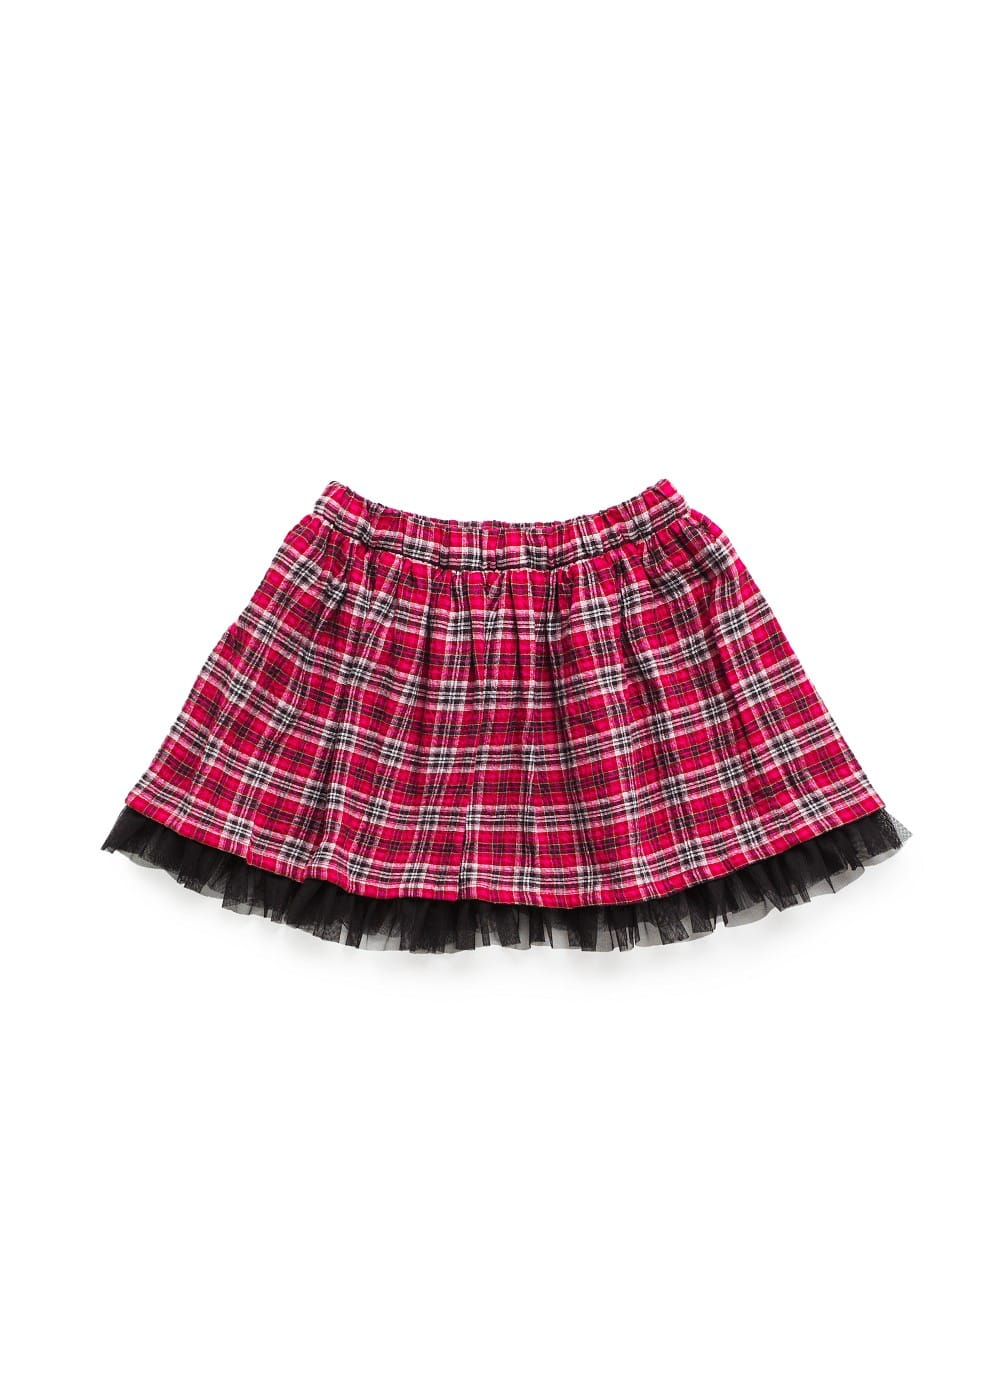 Tulle appliqué plaid miniskirt | MANGO KIDS